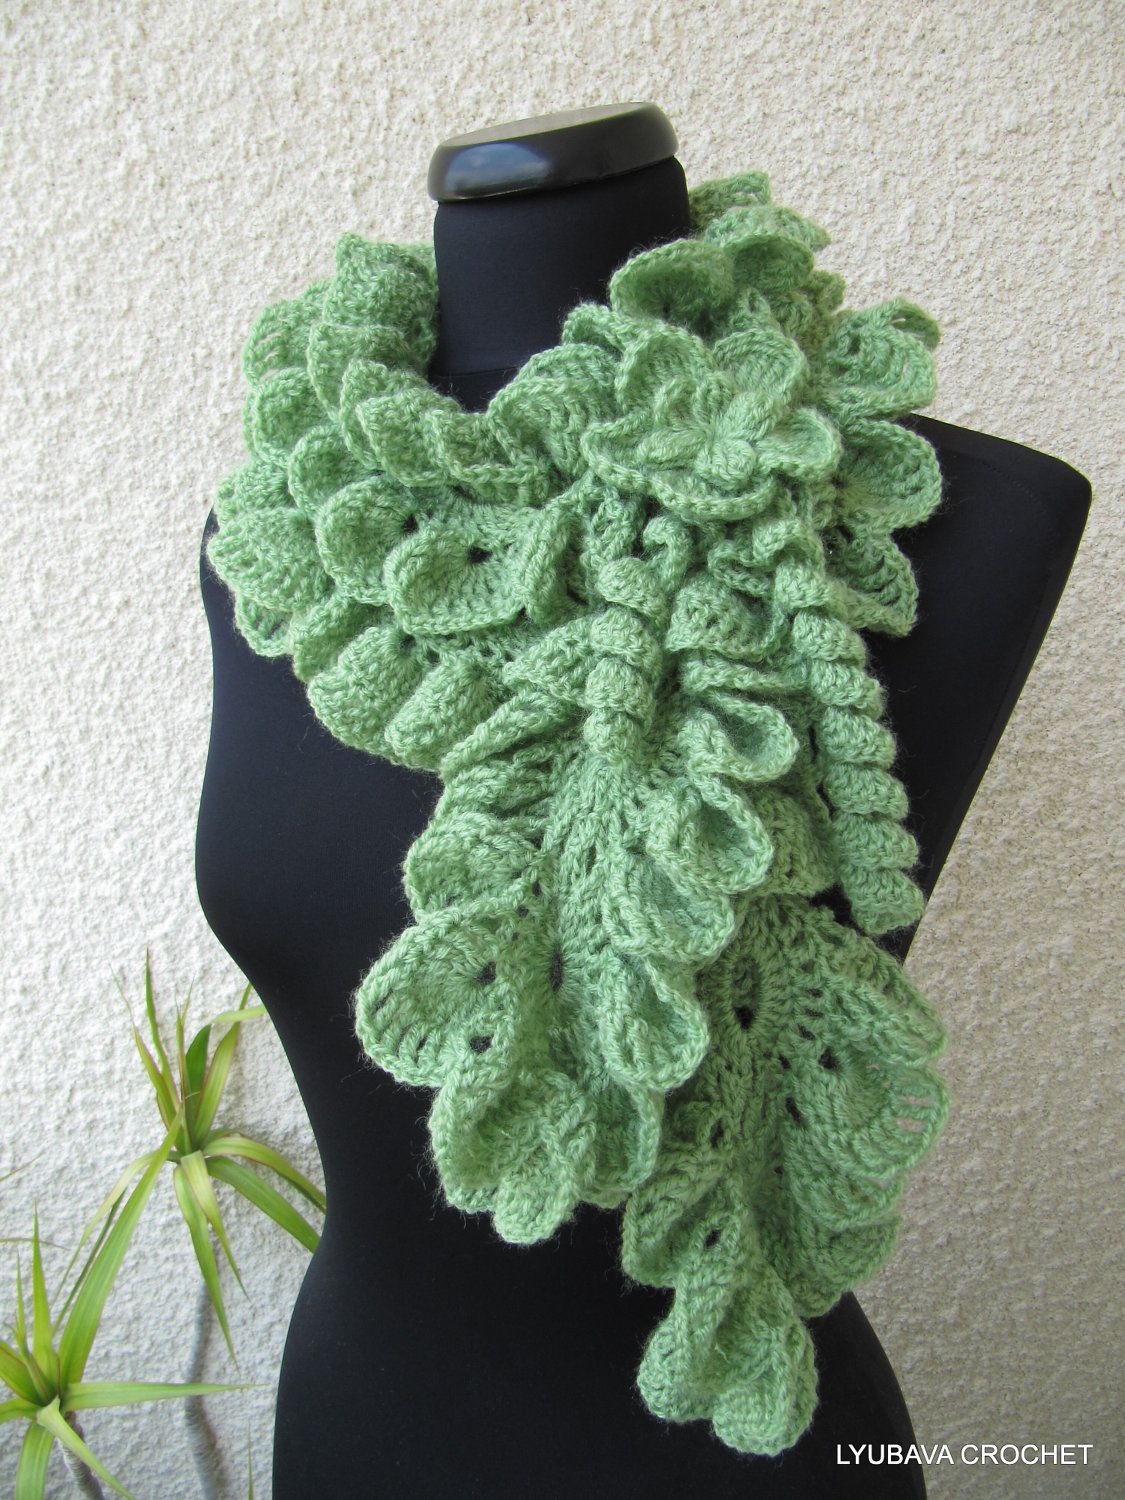 Beautiful Crochet Ruffle Scarf Made to order Fashion Neck Warmer Crochet Ruffle Scarf Of Inspirational Firehawke Hooks and Needles Free Pattern Ruffle Scarf Crochet Ruffle Scarf